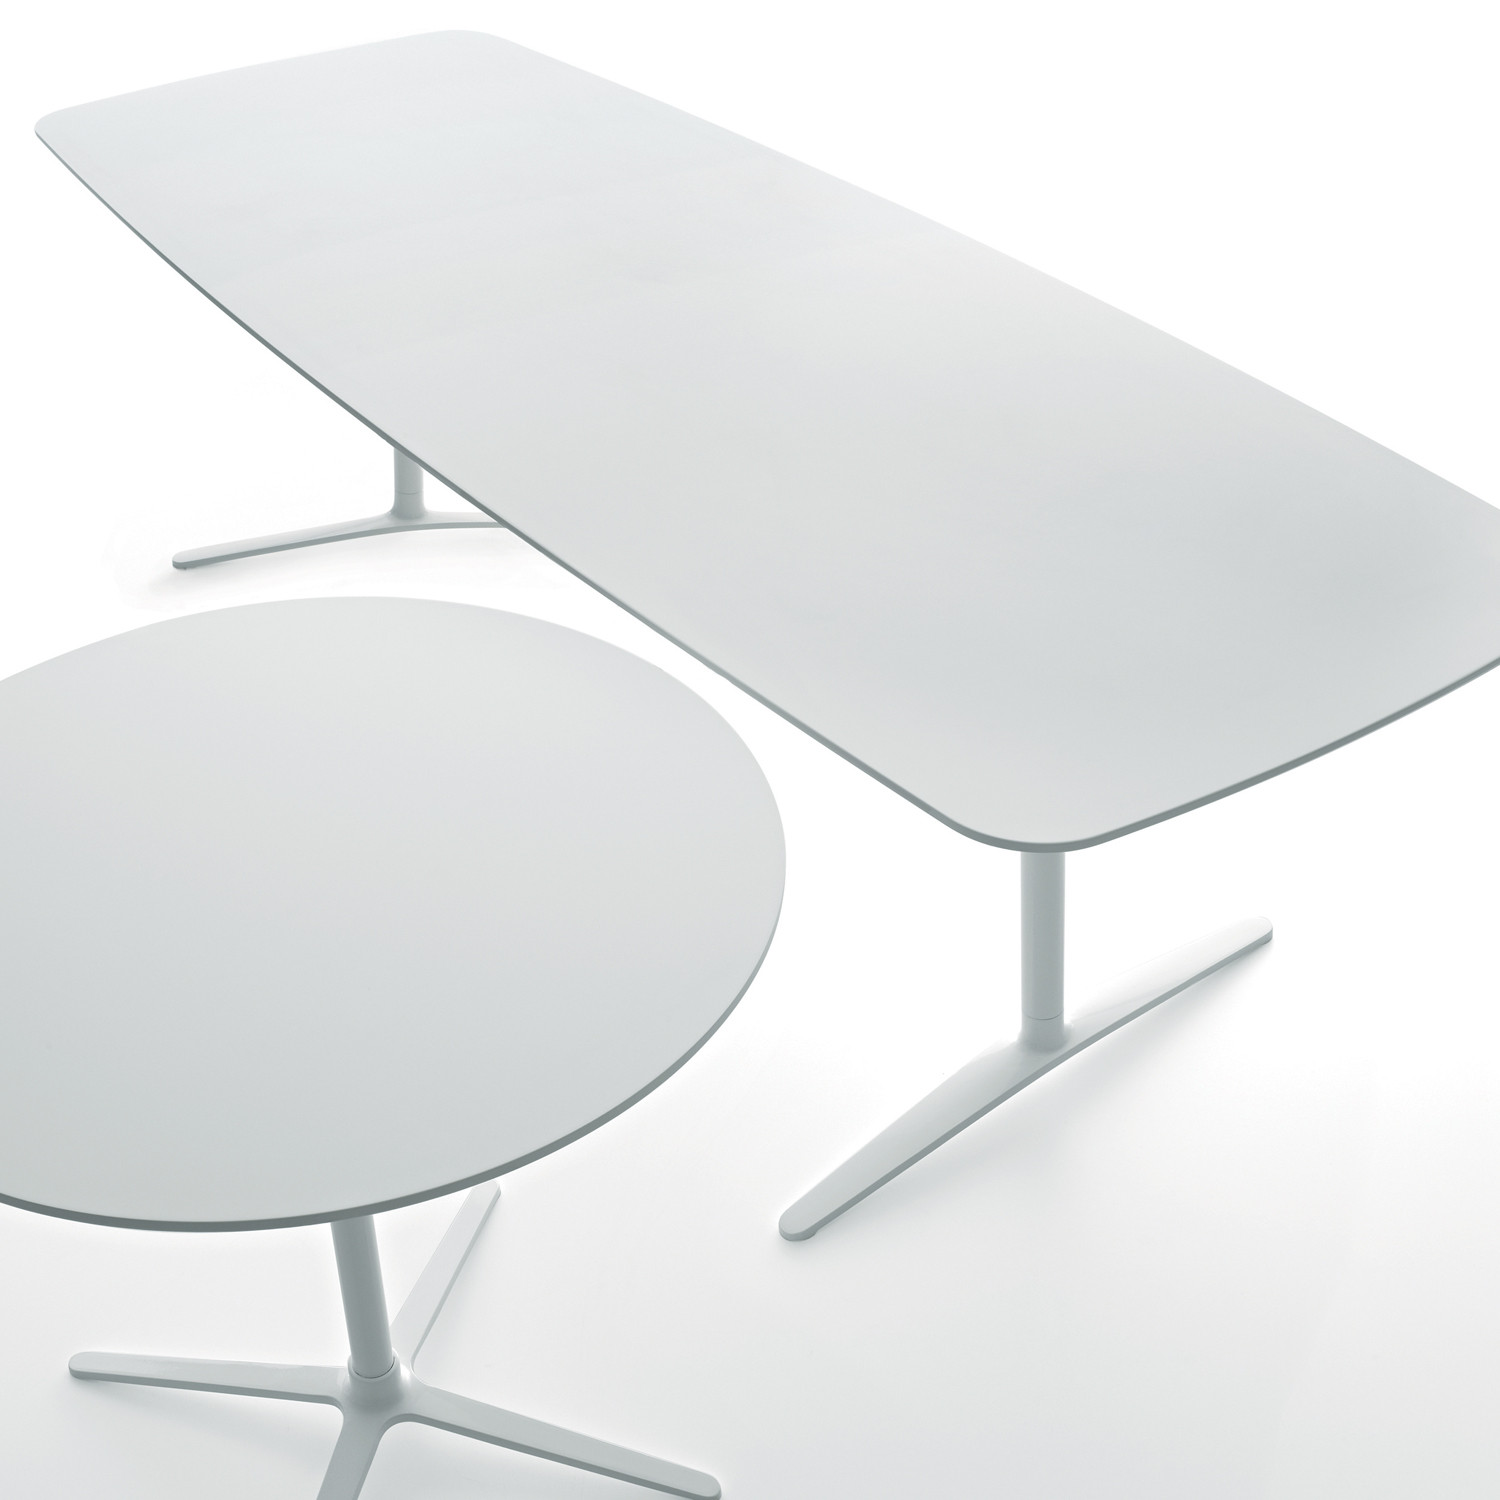 Plato Meeting Room Tables